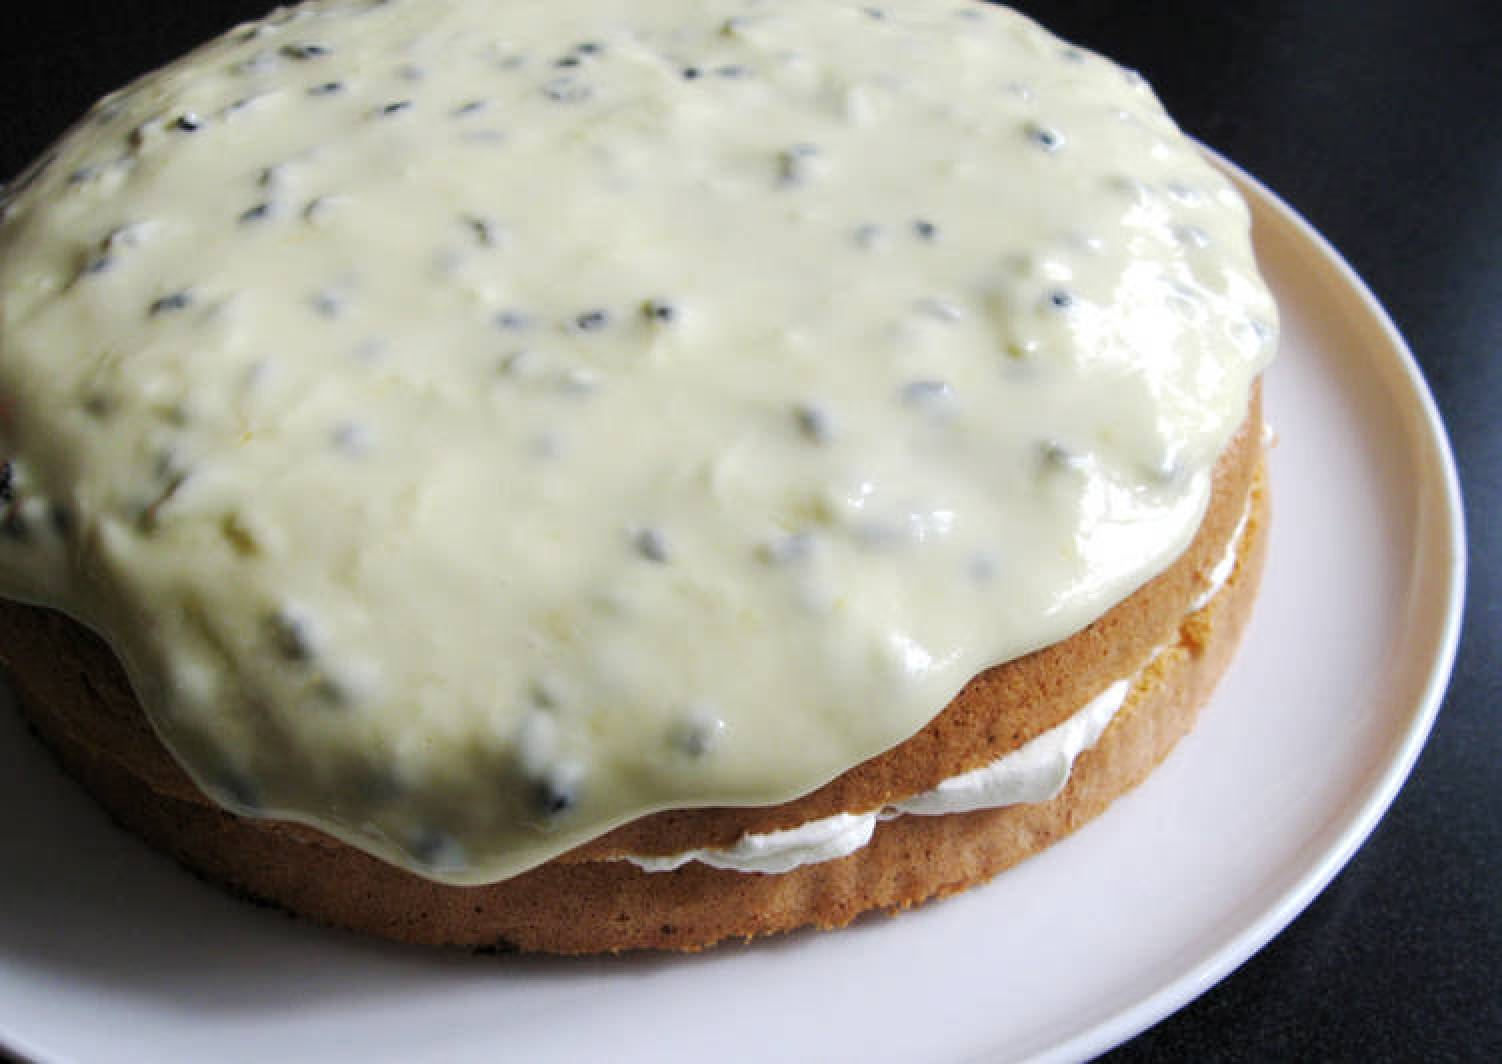 Simple Sponge Cake with Passionfruit Icing